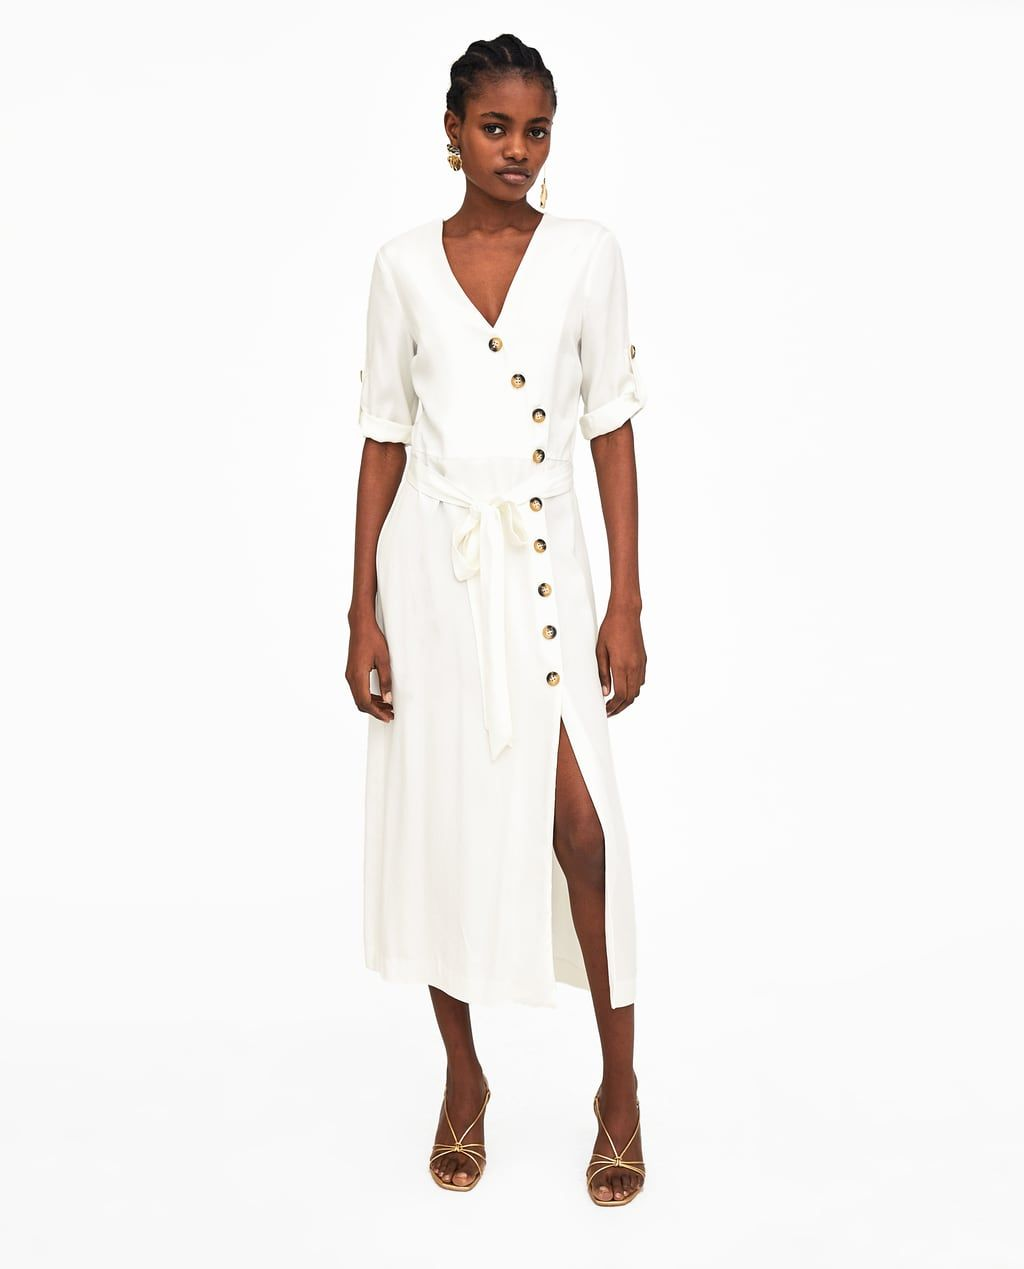 d146c6f17f9 Image 1 of MIDI DRESS WITH BUTTONS from Zara